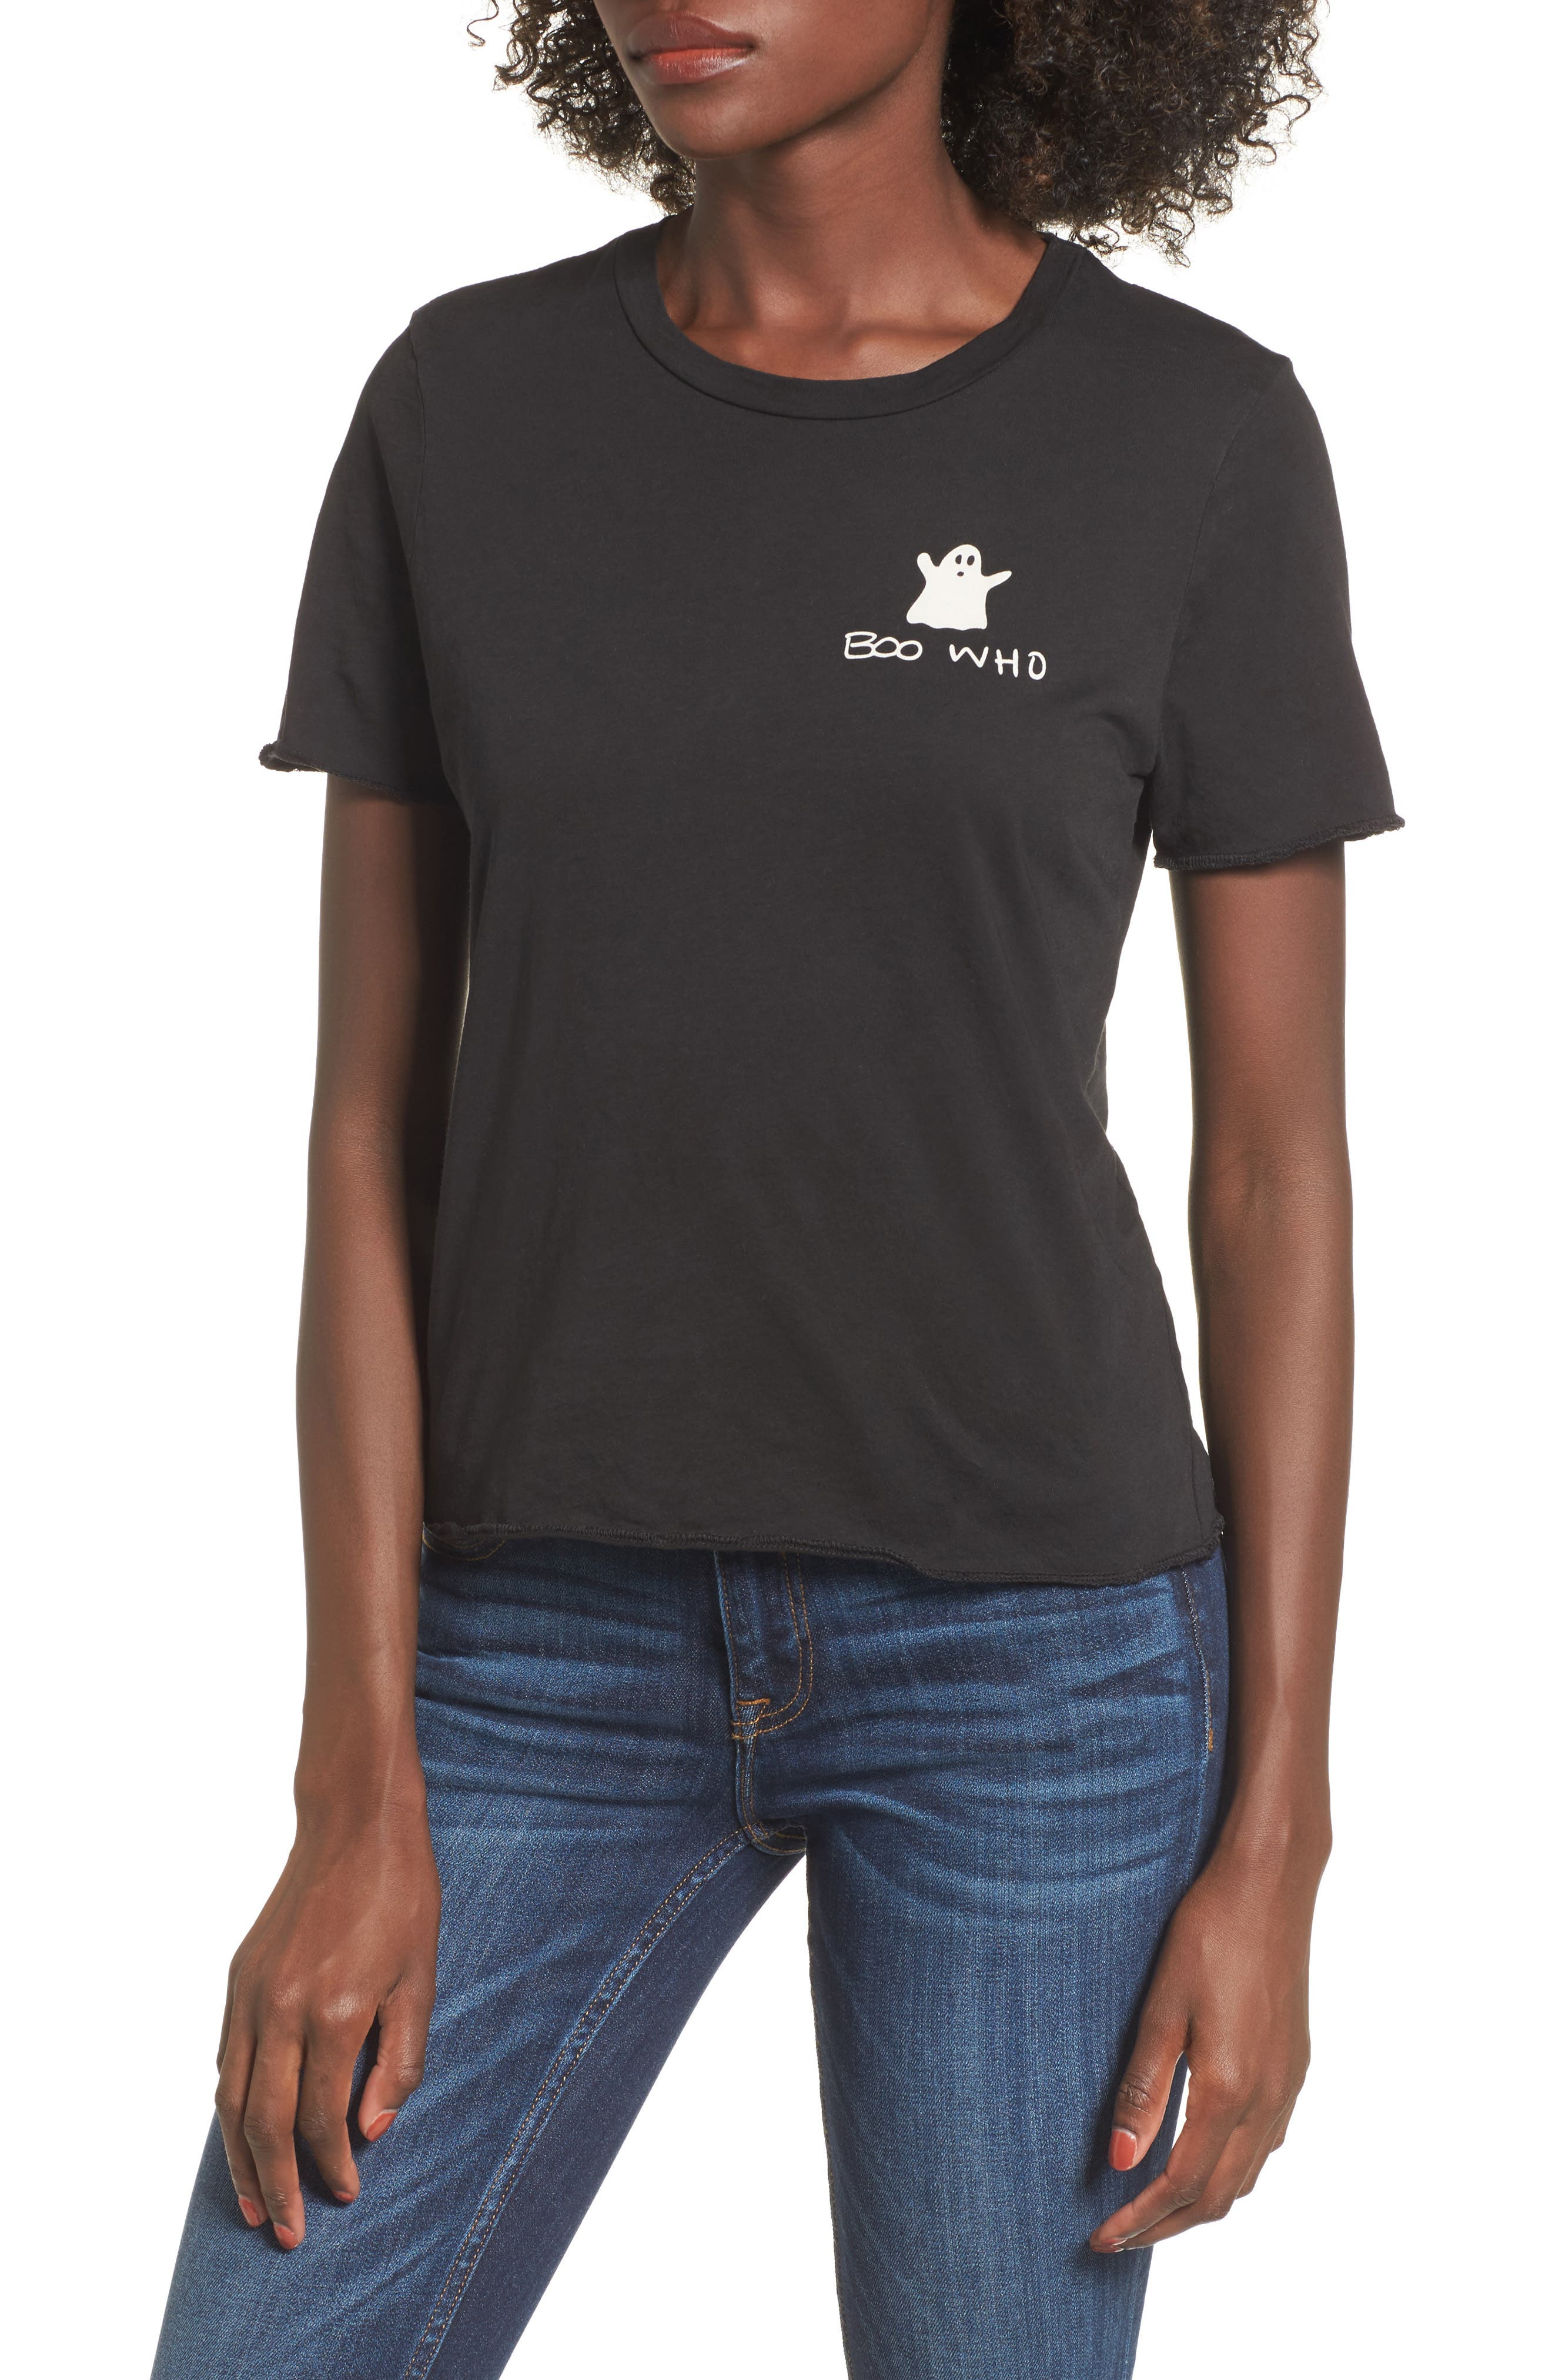 Boo Who Graphic Tee,                         Main,                         color, Black